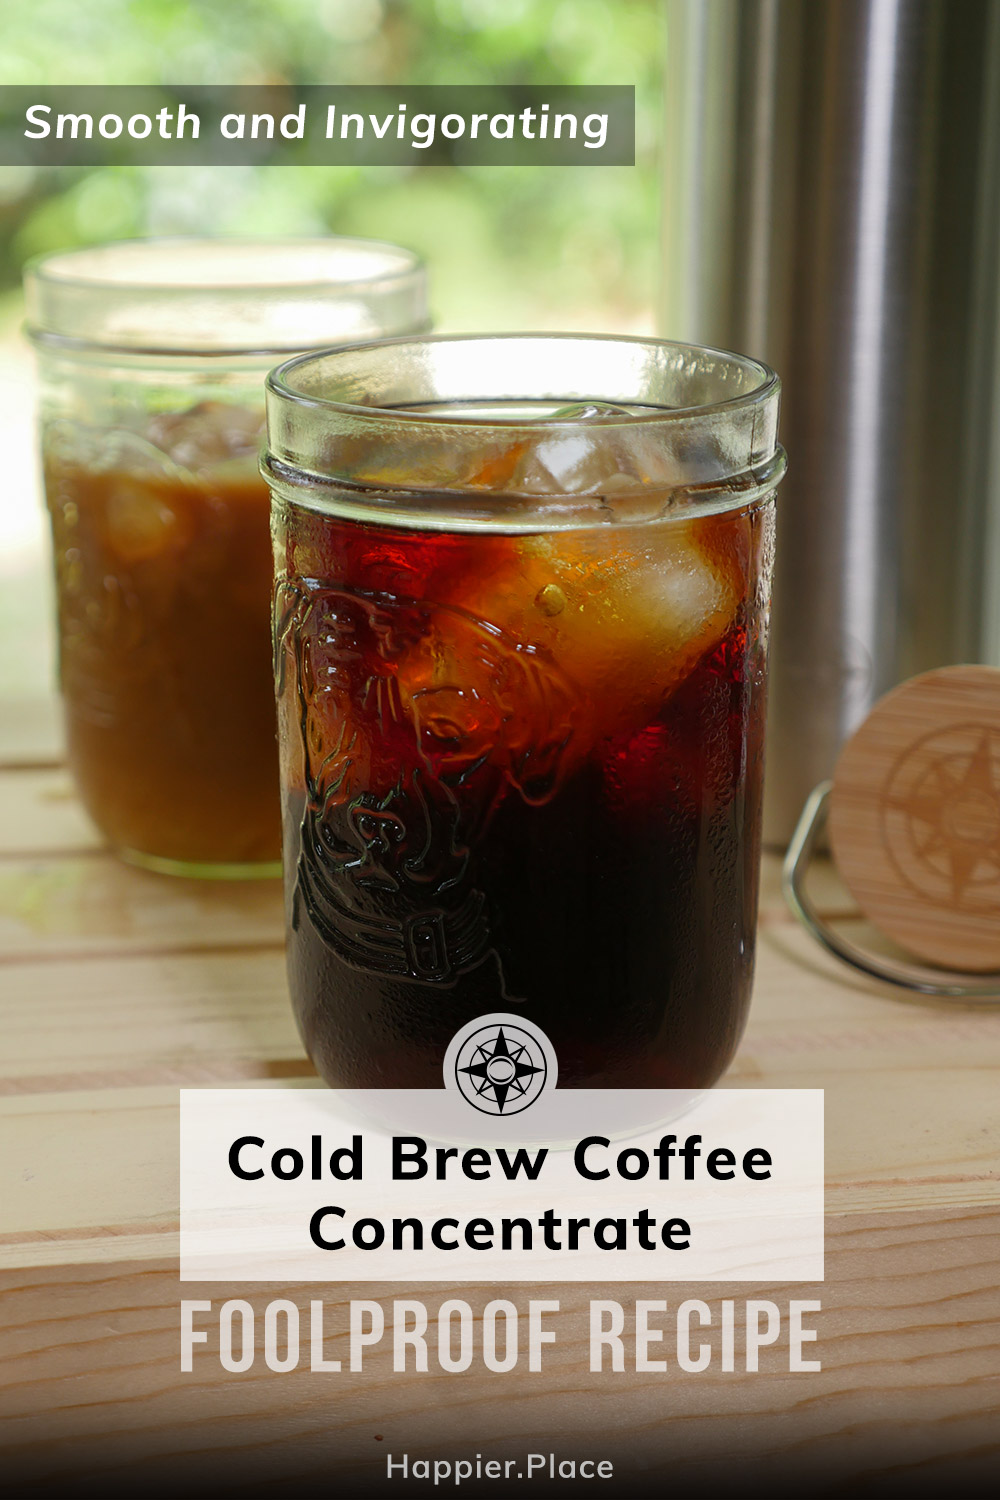 Foolproof cold brew coffee concentrate recipe - smooth and invigorating! Brought to you by Happier Place